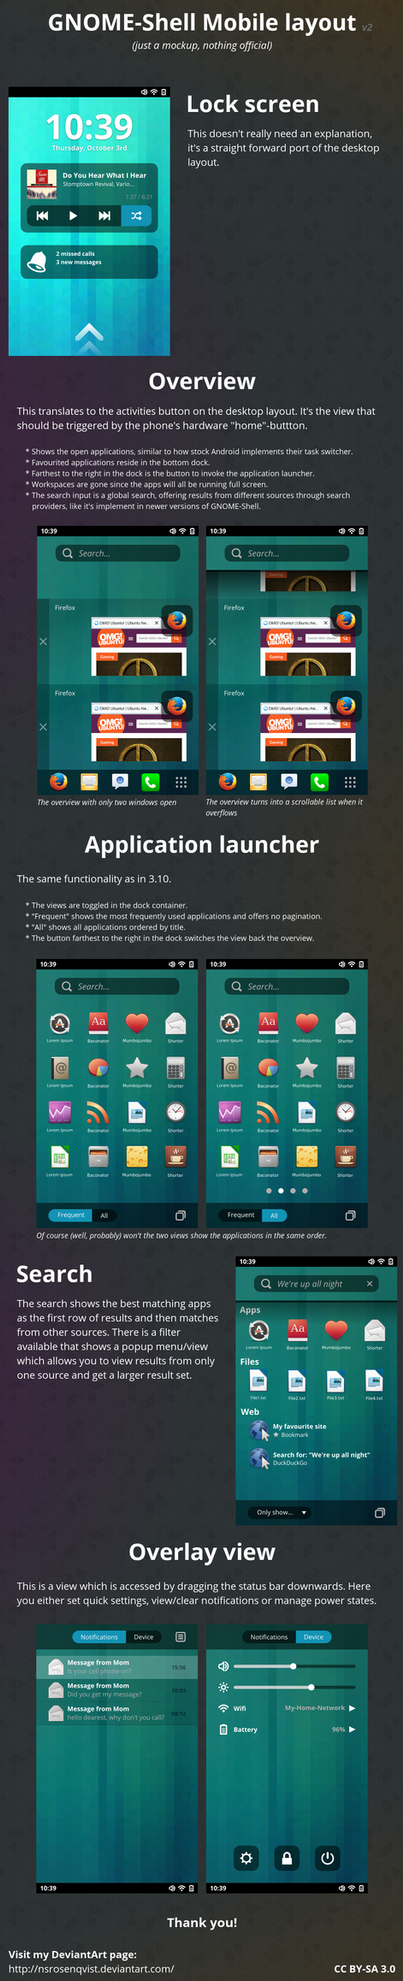 GNOME-Shell mobile layout mockup by nsrosenqvist